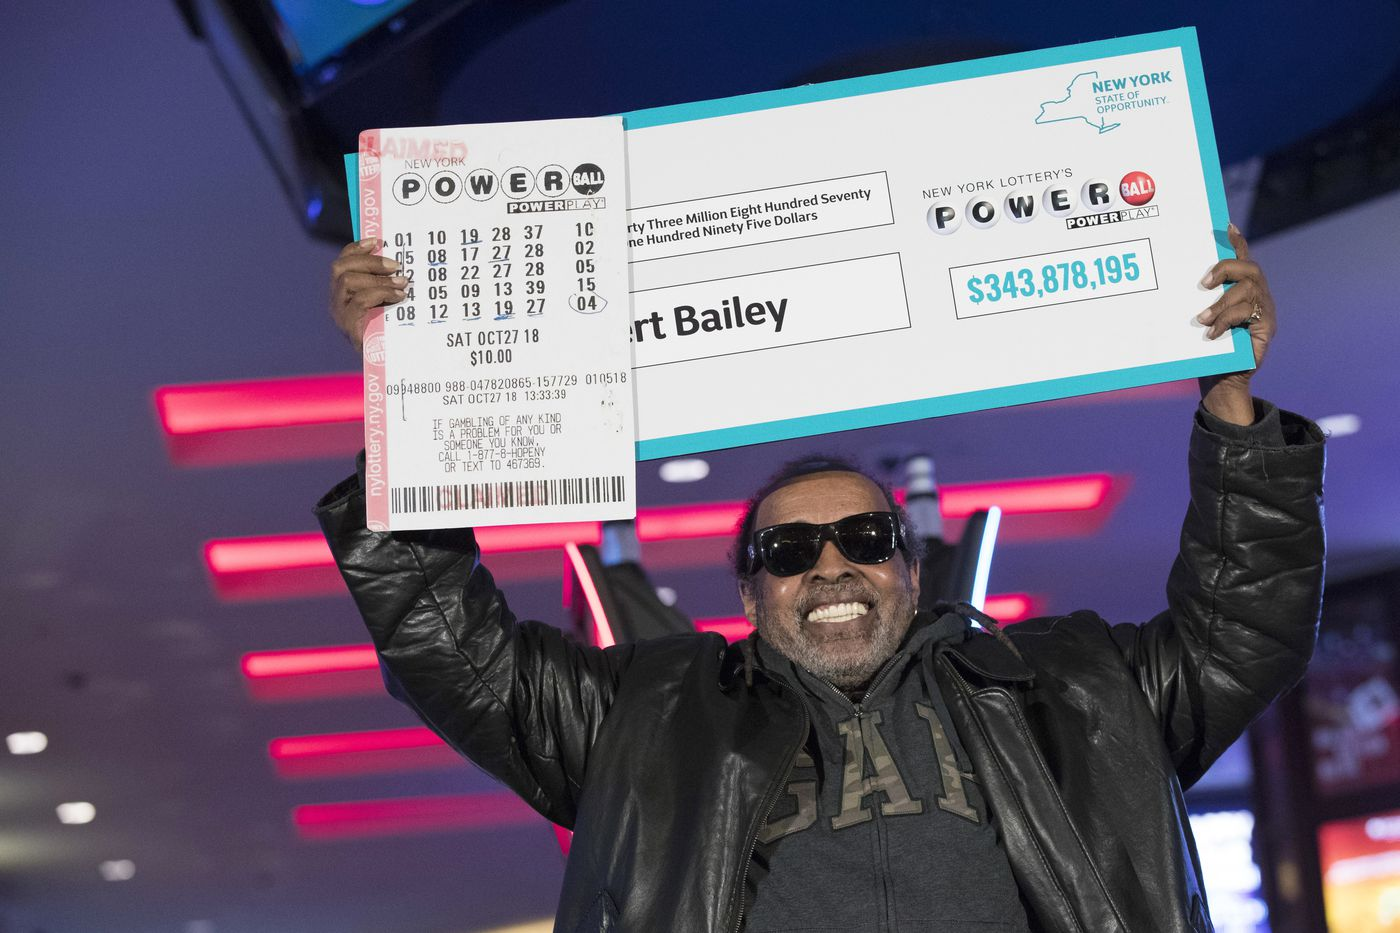 Harlem Resident Wins State's Largest Ever Lotto Jackpot of $383.8 Million